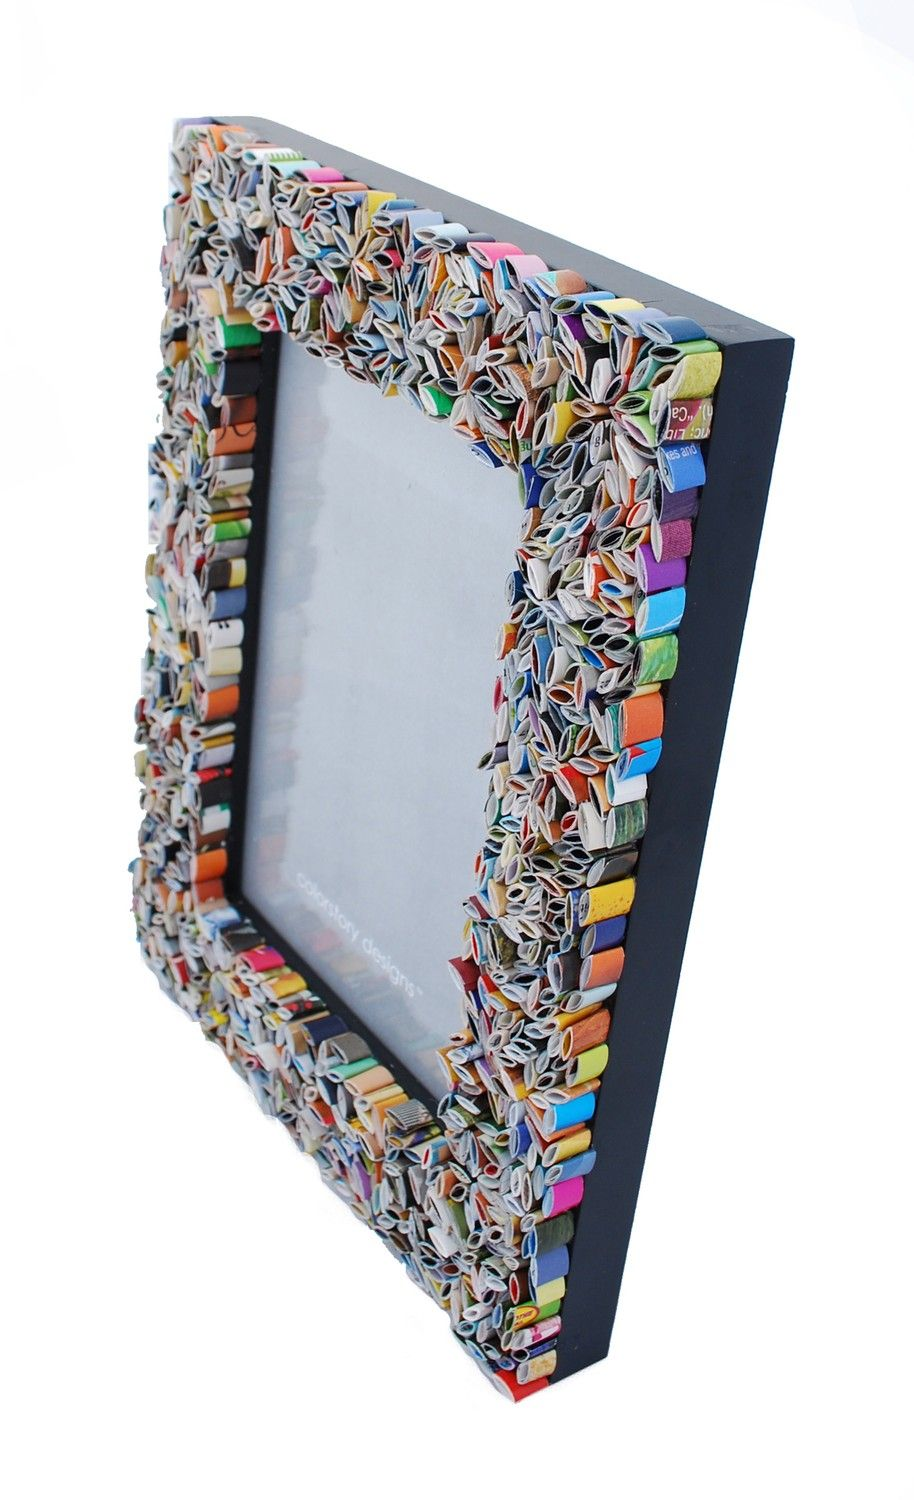 Picture Frame Made From Recycled Magazines By Colorstorydesigns